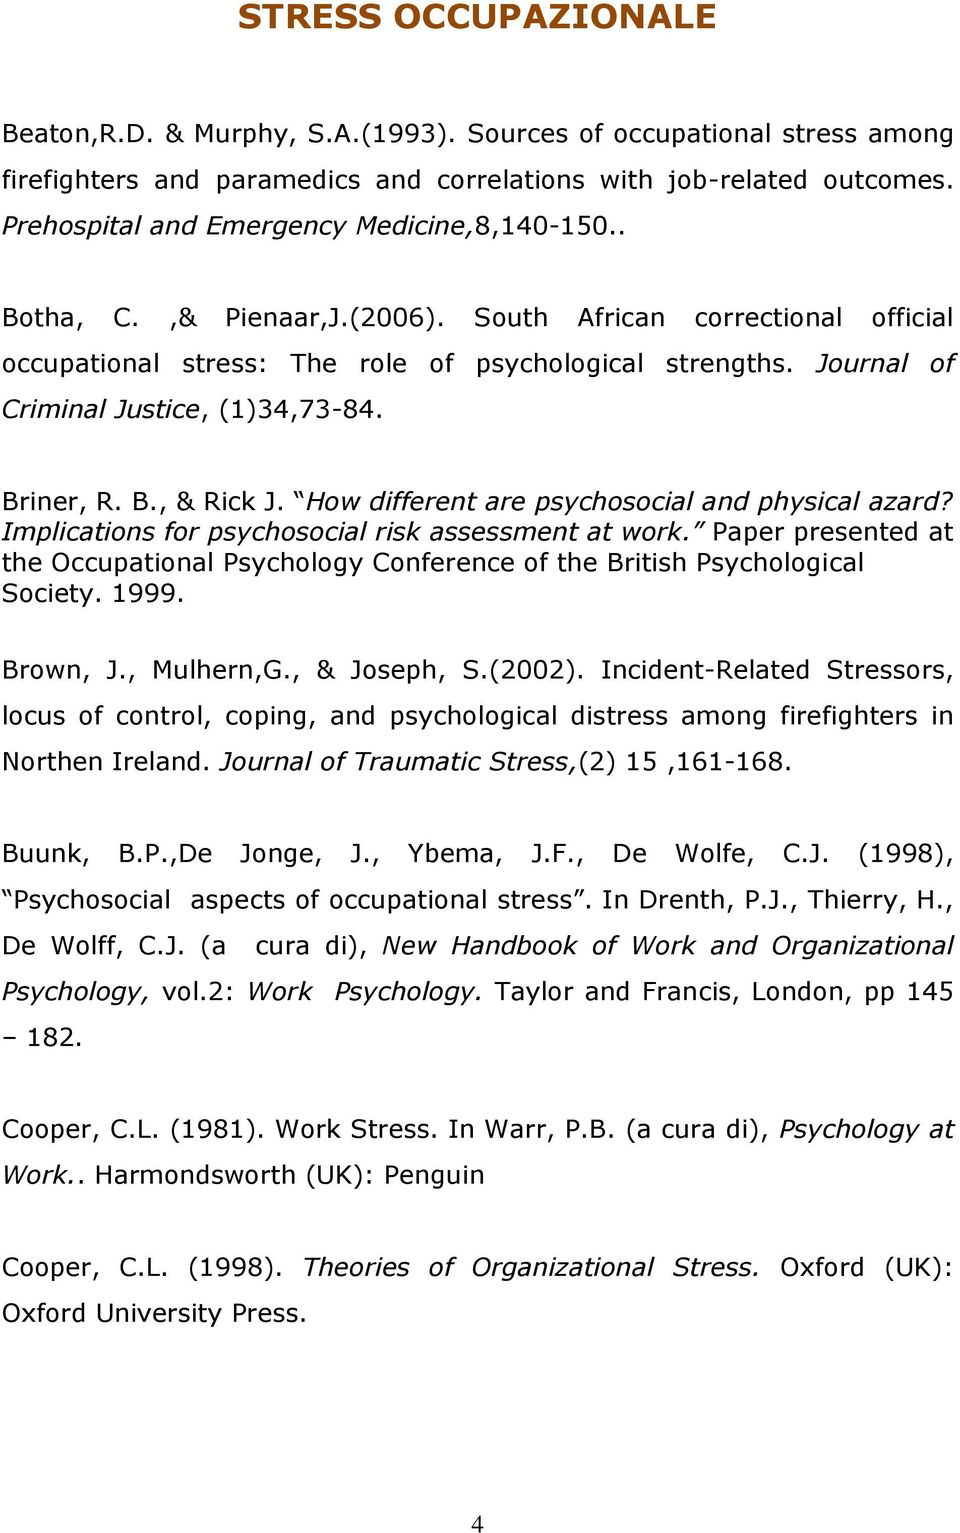 Journal of Criminal Justice, (1)34,73-84. Briner, R. B., & Rick J. How different are psychosocial and physical azard? Implications for psychosocial risk assessment at work.